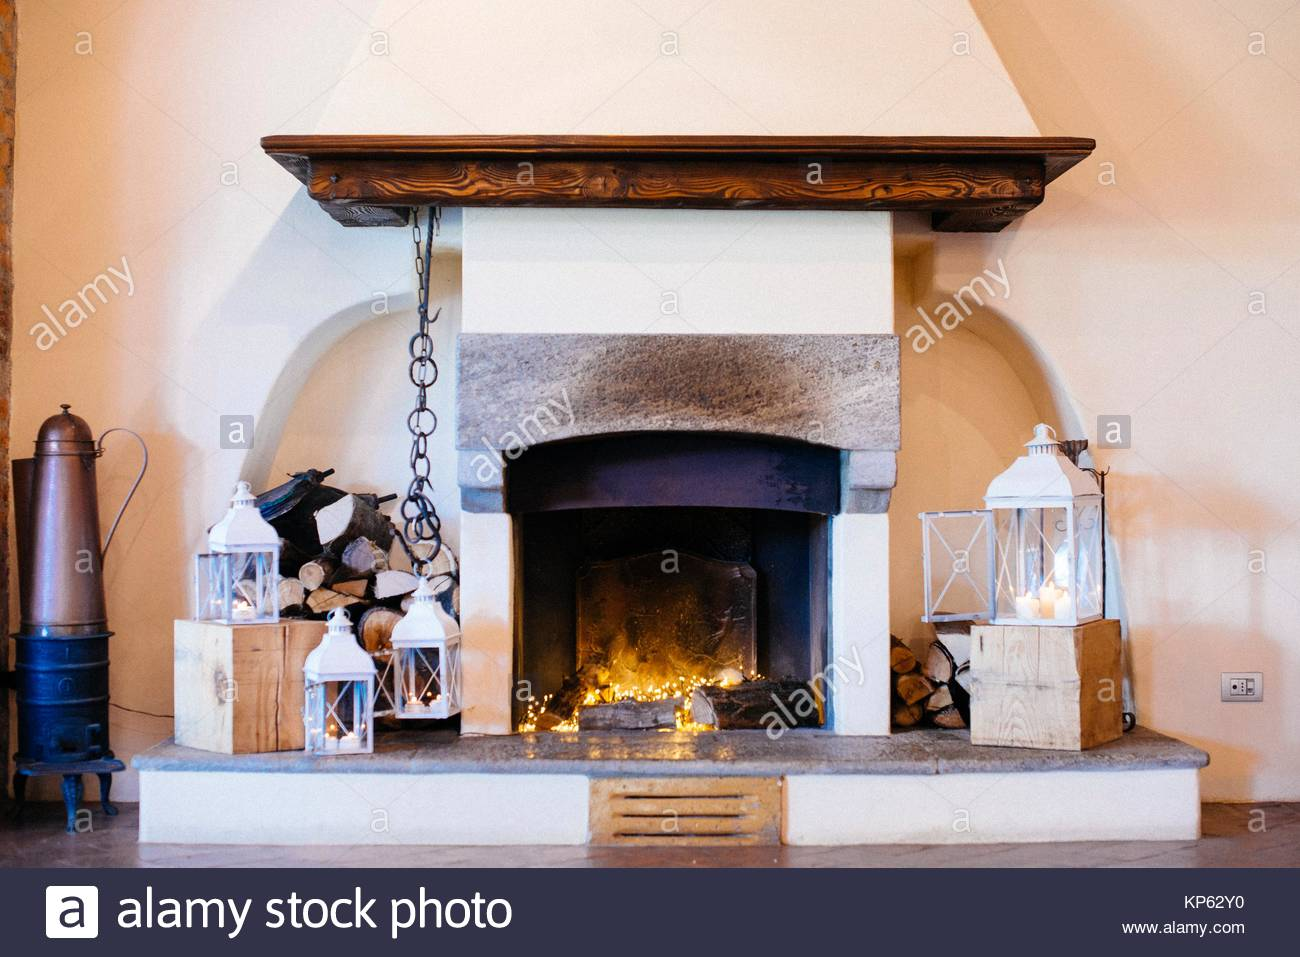 Fireplace decorated with lights and lamps - Stock Image